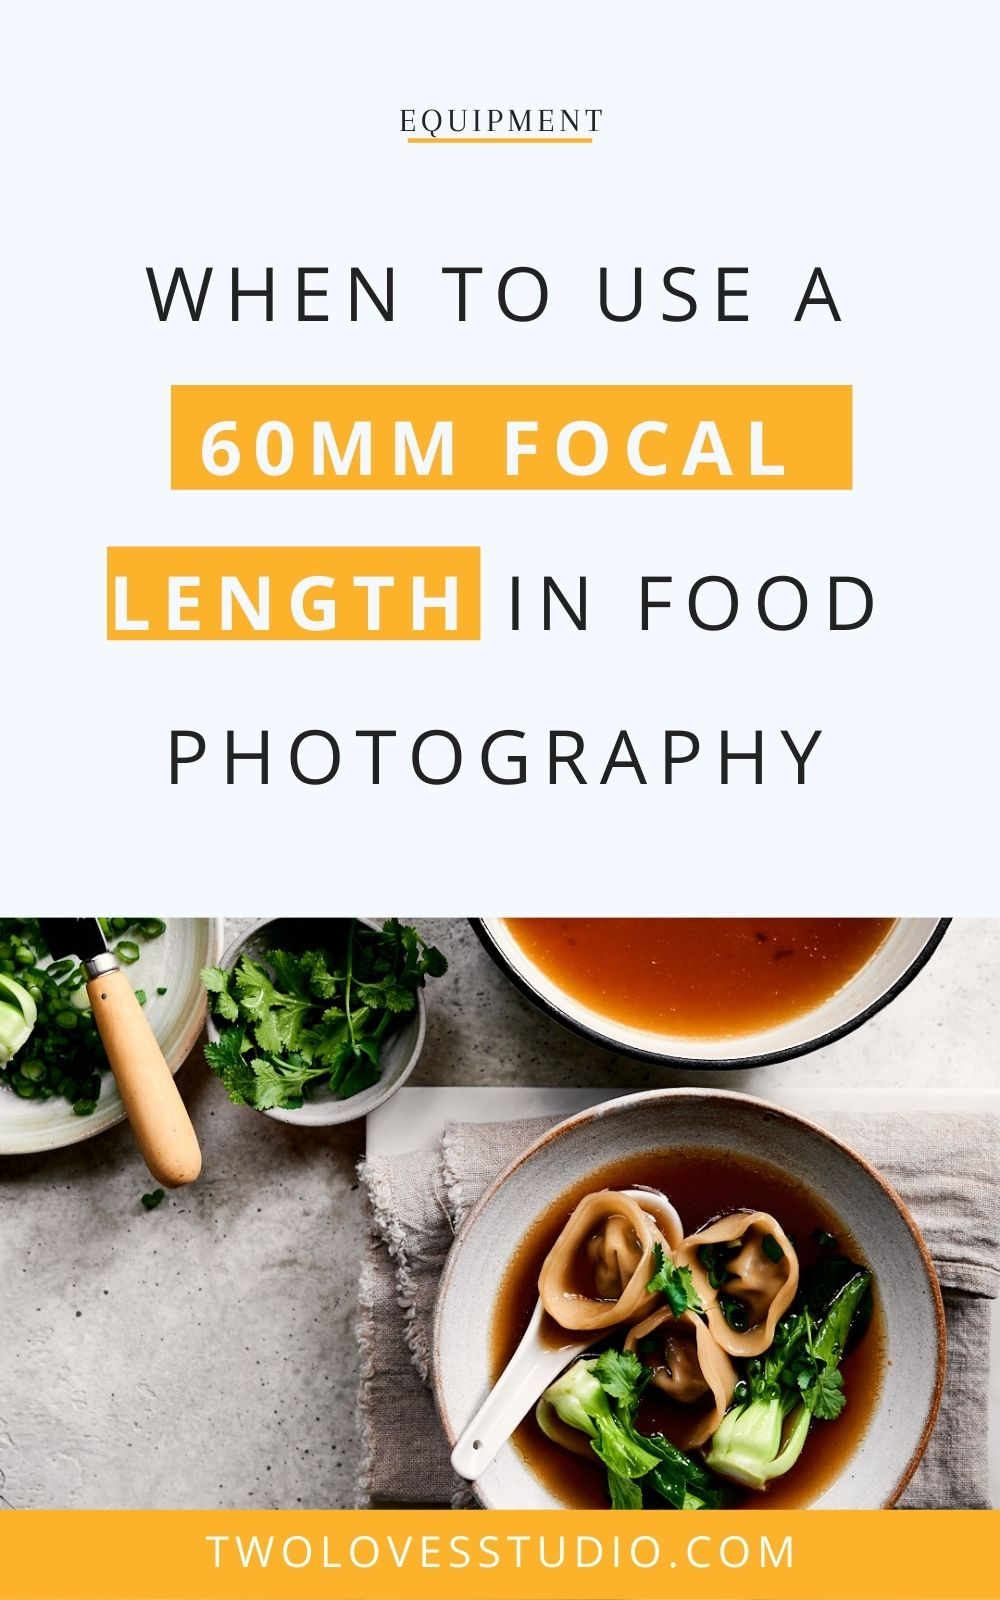 A bowl of wonton soup over head with the text when to use a 60mm focal length in food photography.